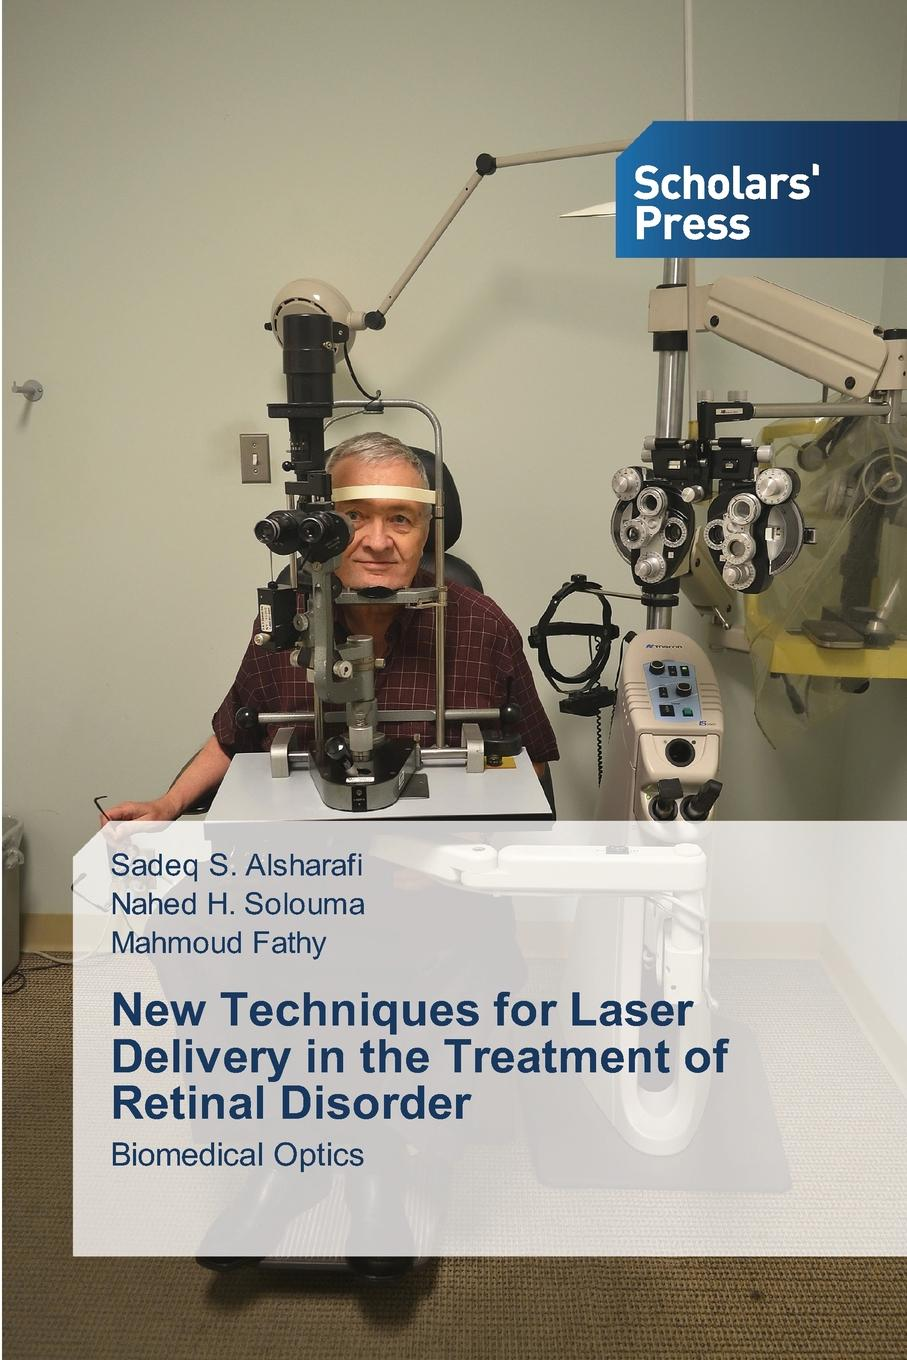 Alsharafi Sadeq S., Solouma Nahed H., Fathy Mahmoud New Techniques for Laser Delivery in the Treatment of Retinal Disorder laser treatment device watch laser therapy watch home use